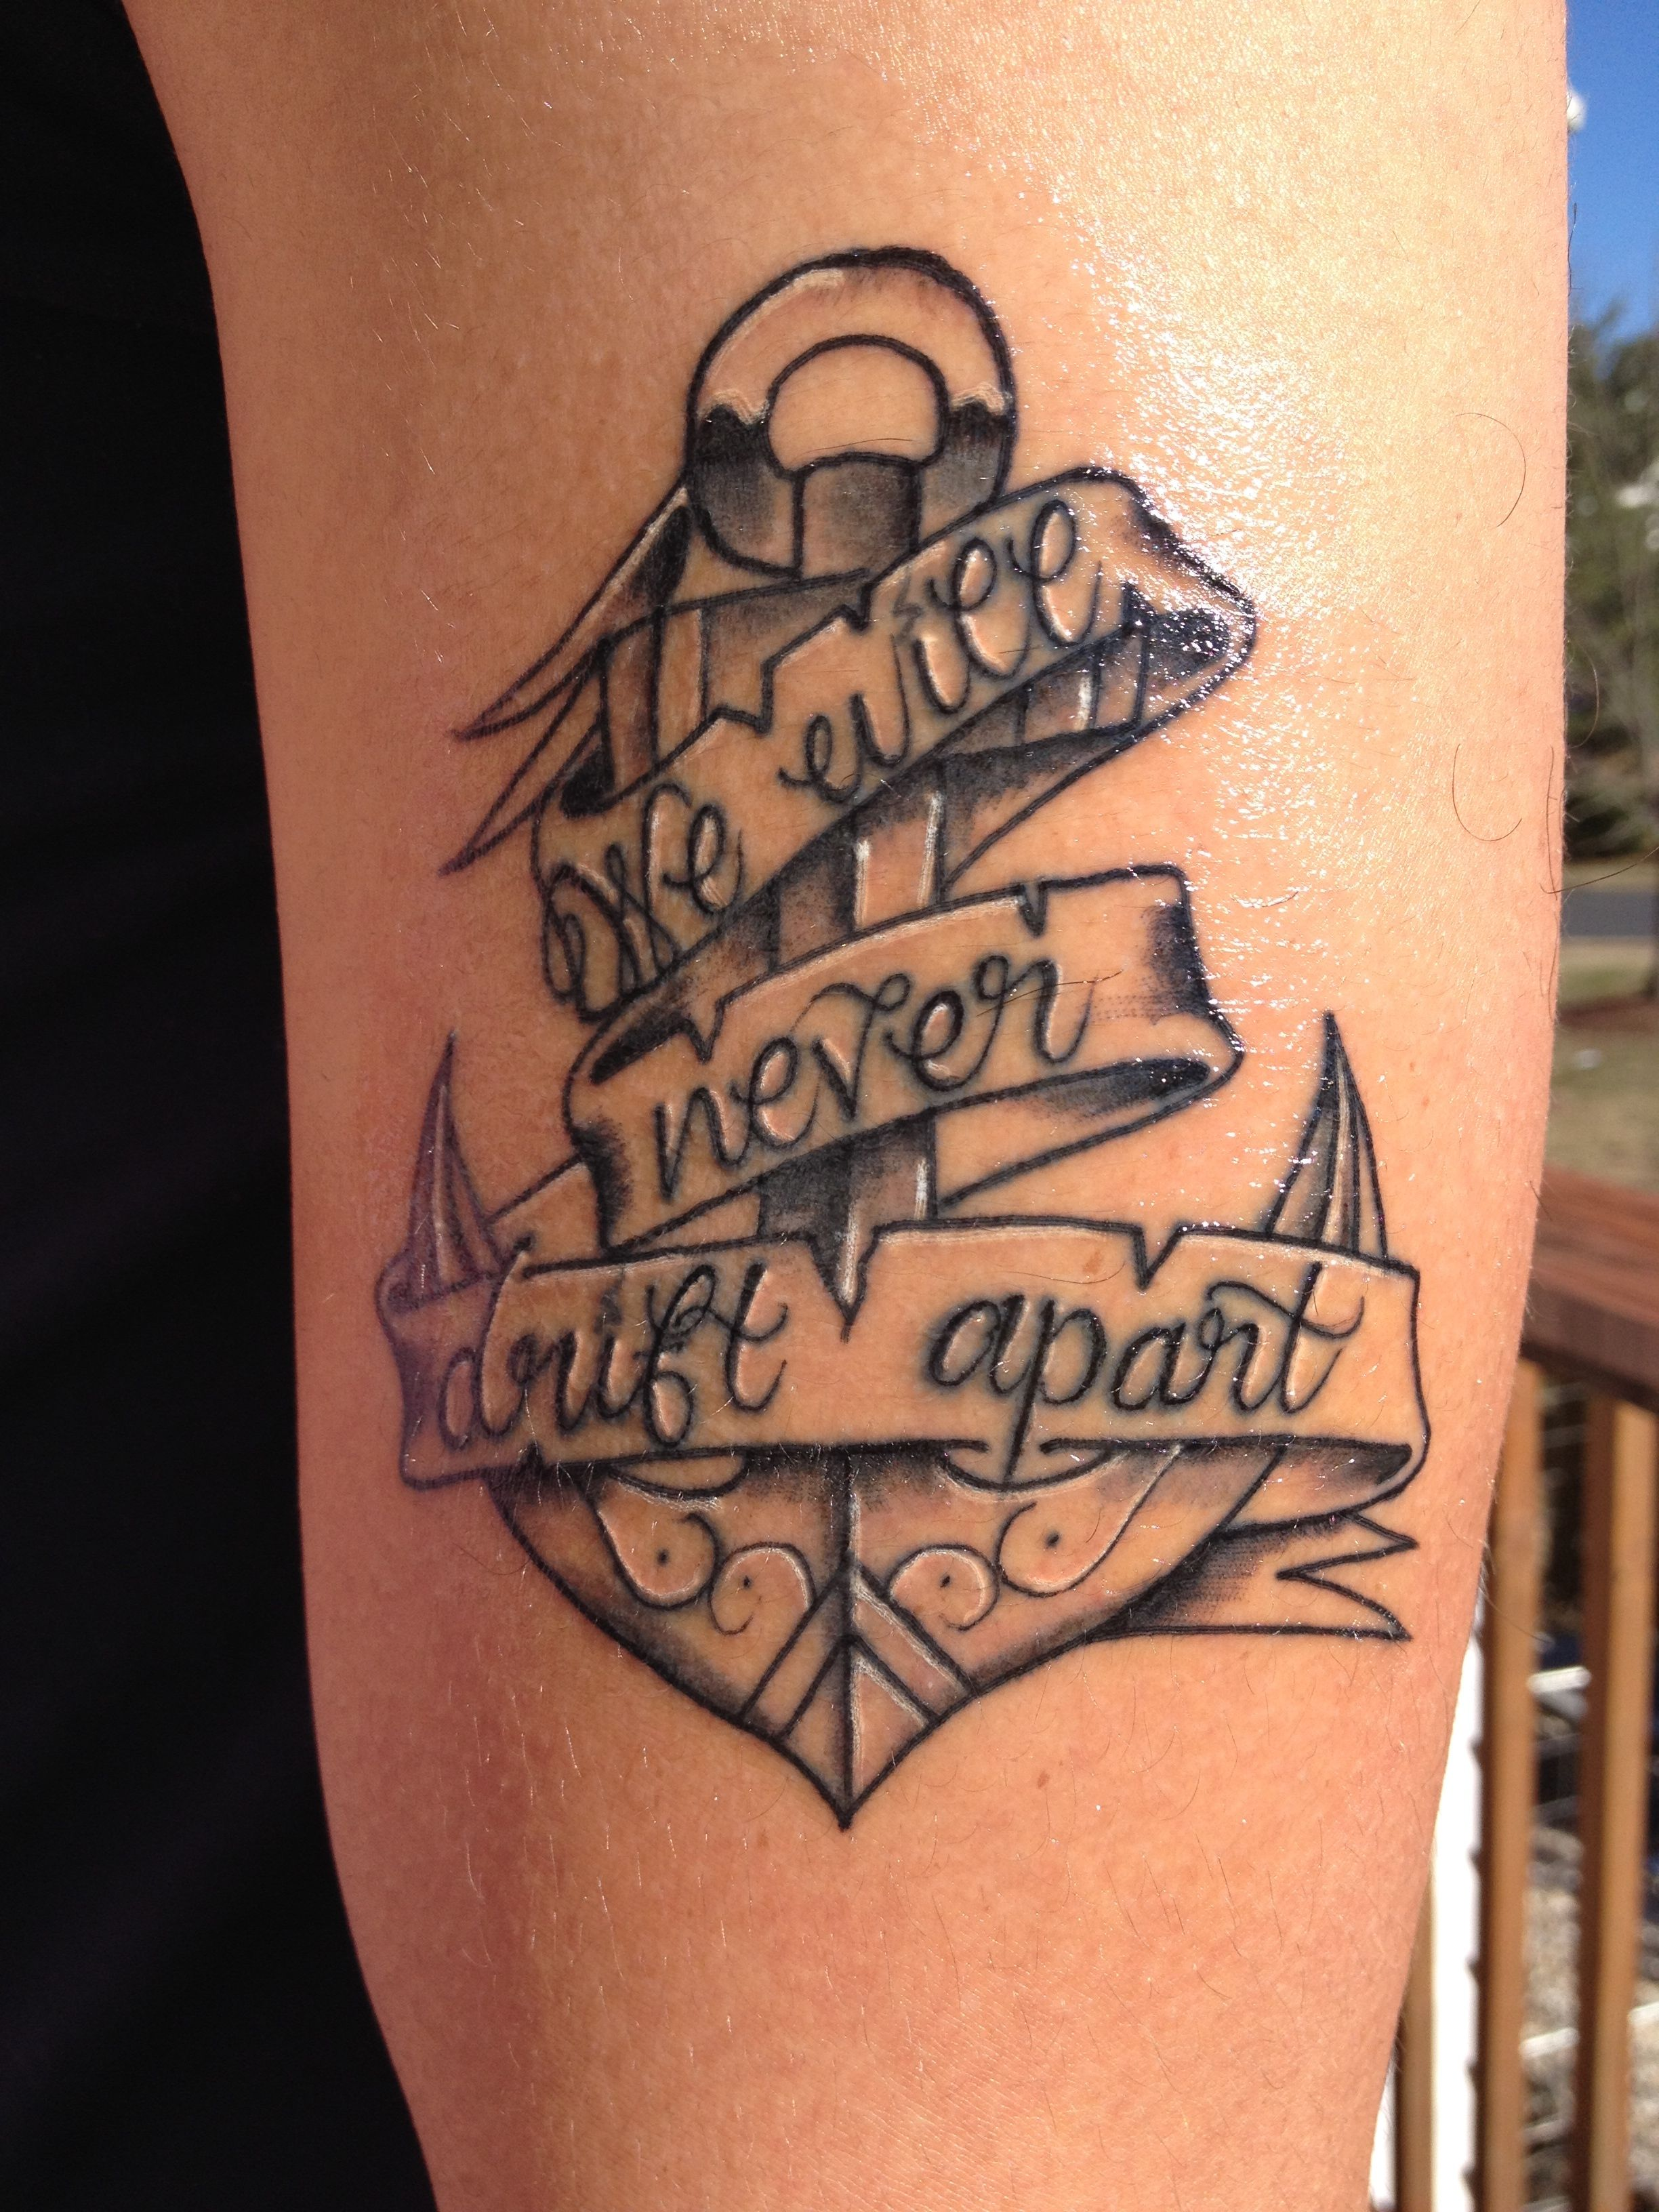 Cool tattoo ideas for brothers brother and sister tattoo we will never drift apart tattoos